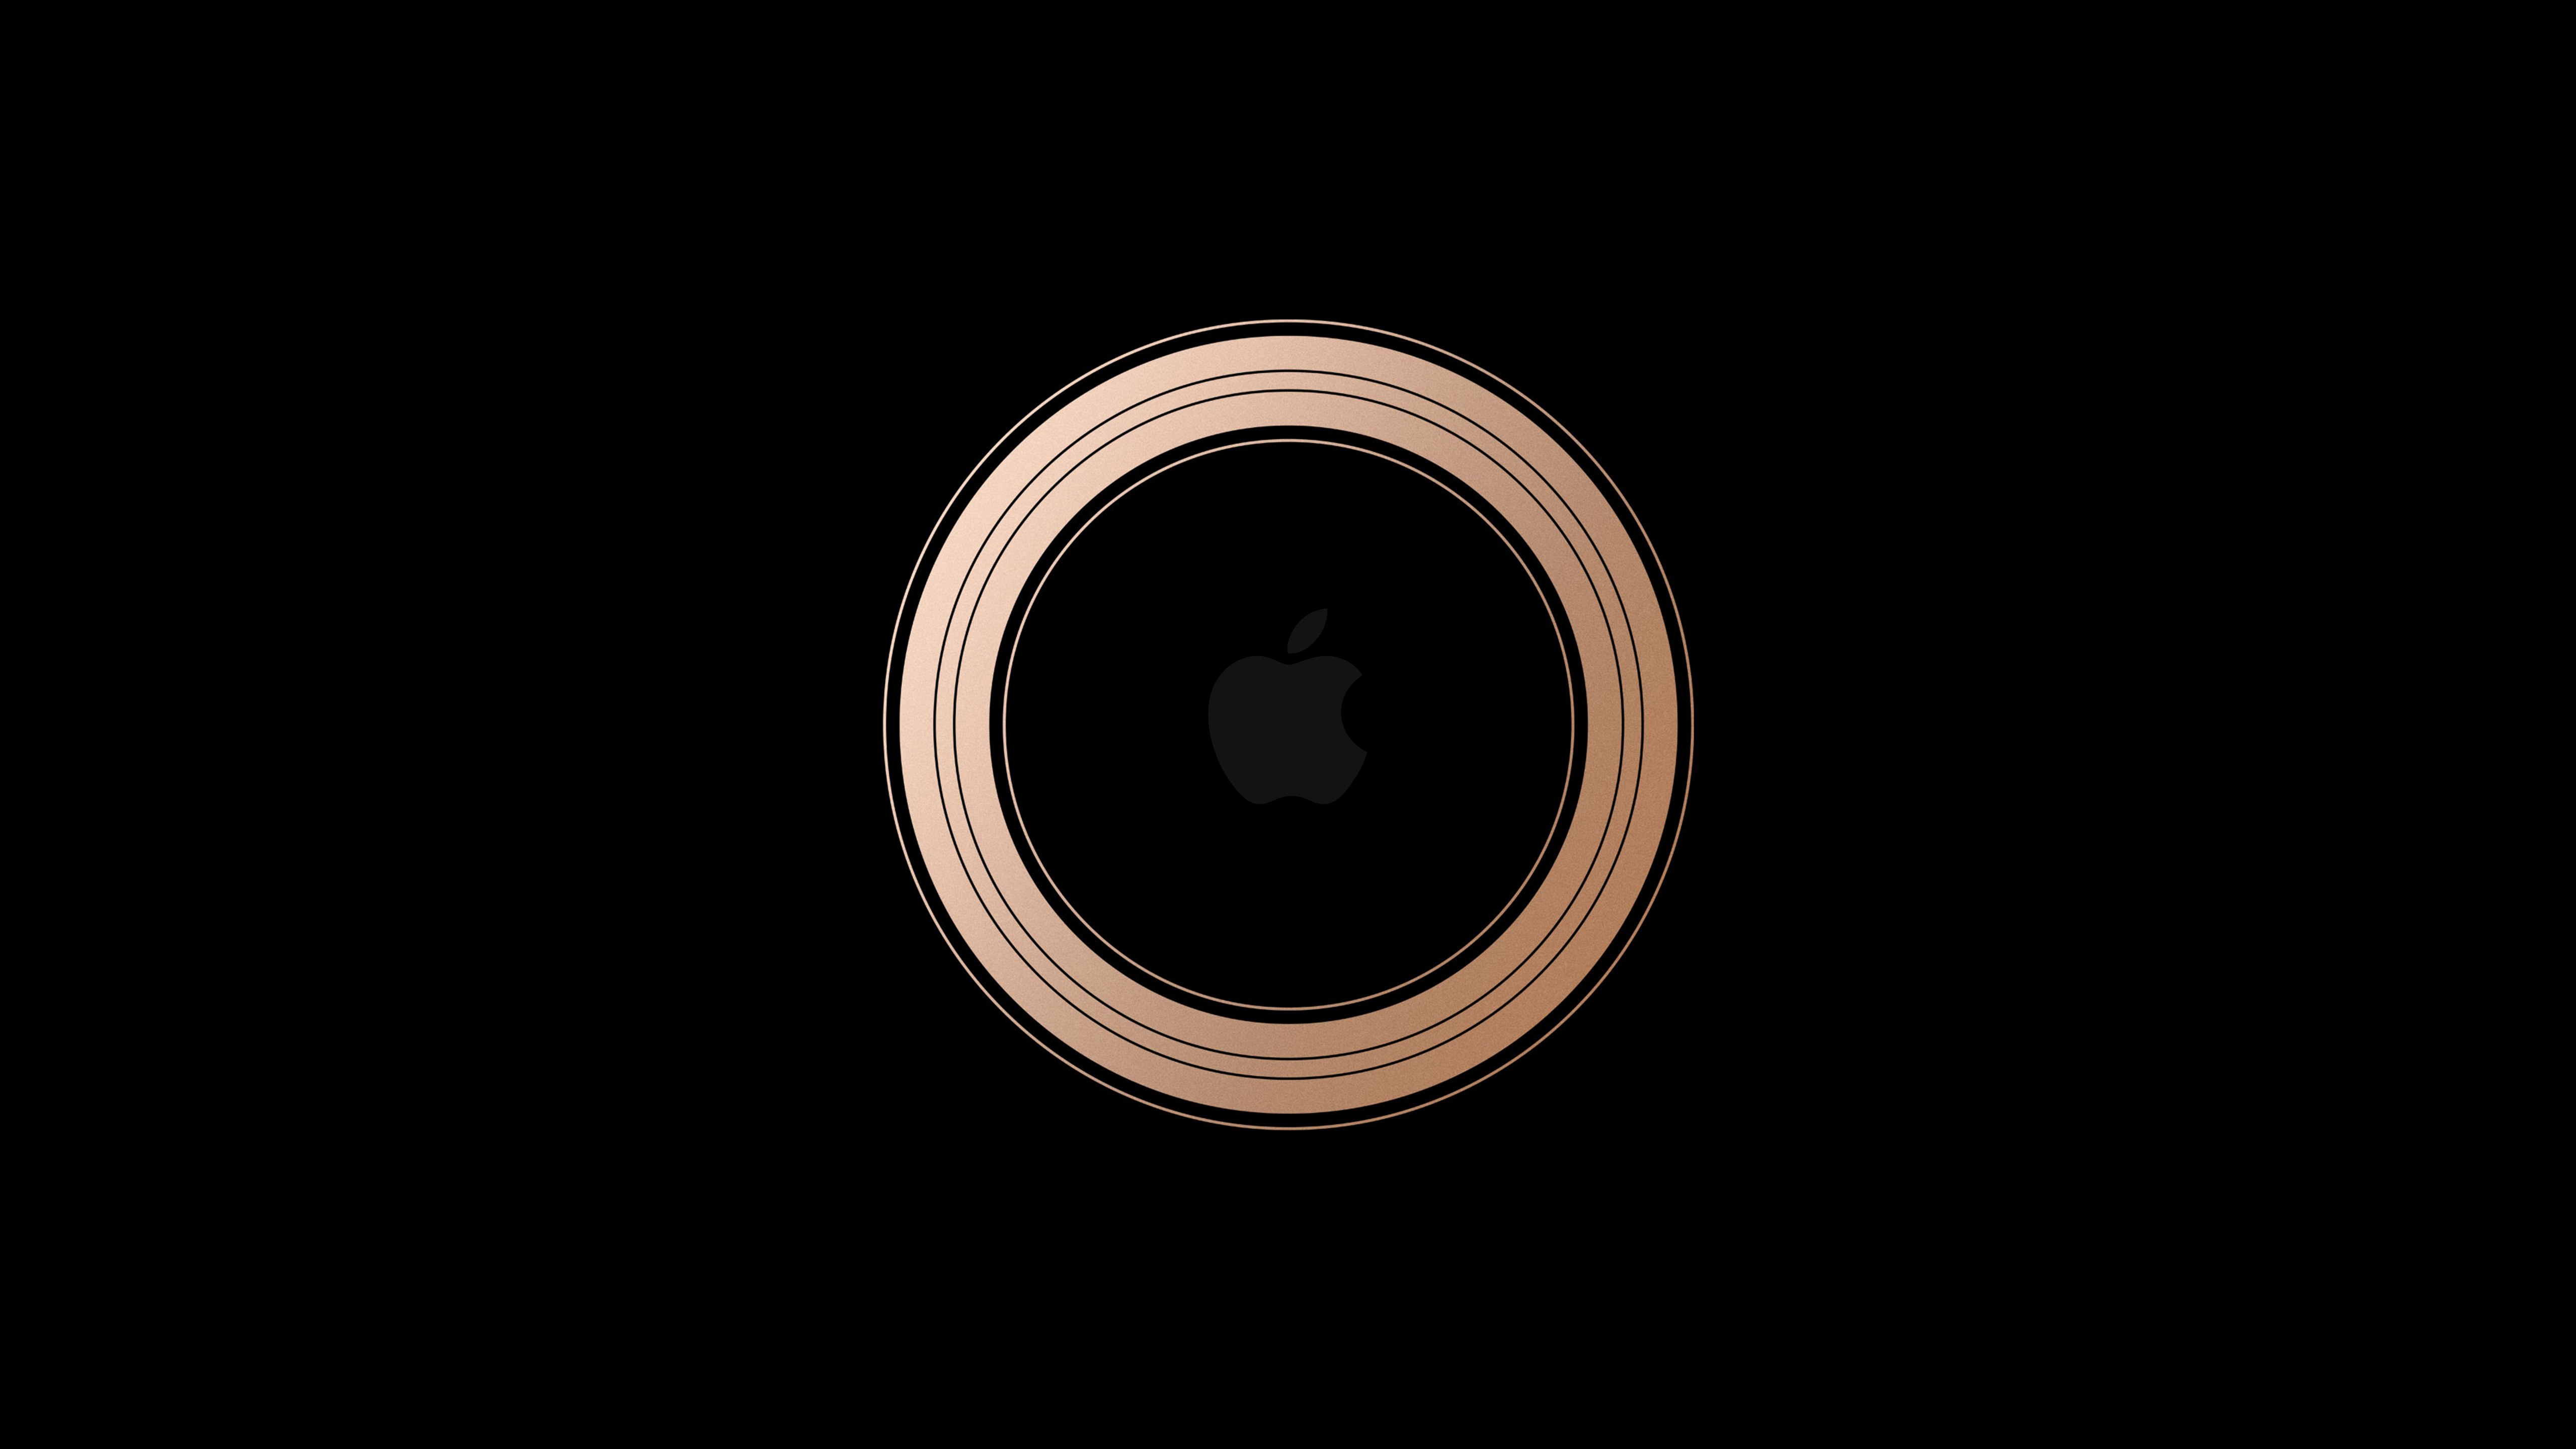 Gather Round Apple Event Wallpapers